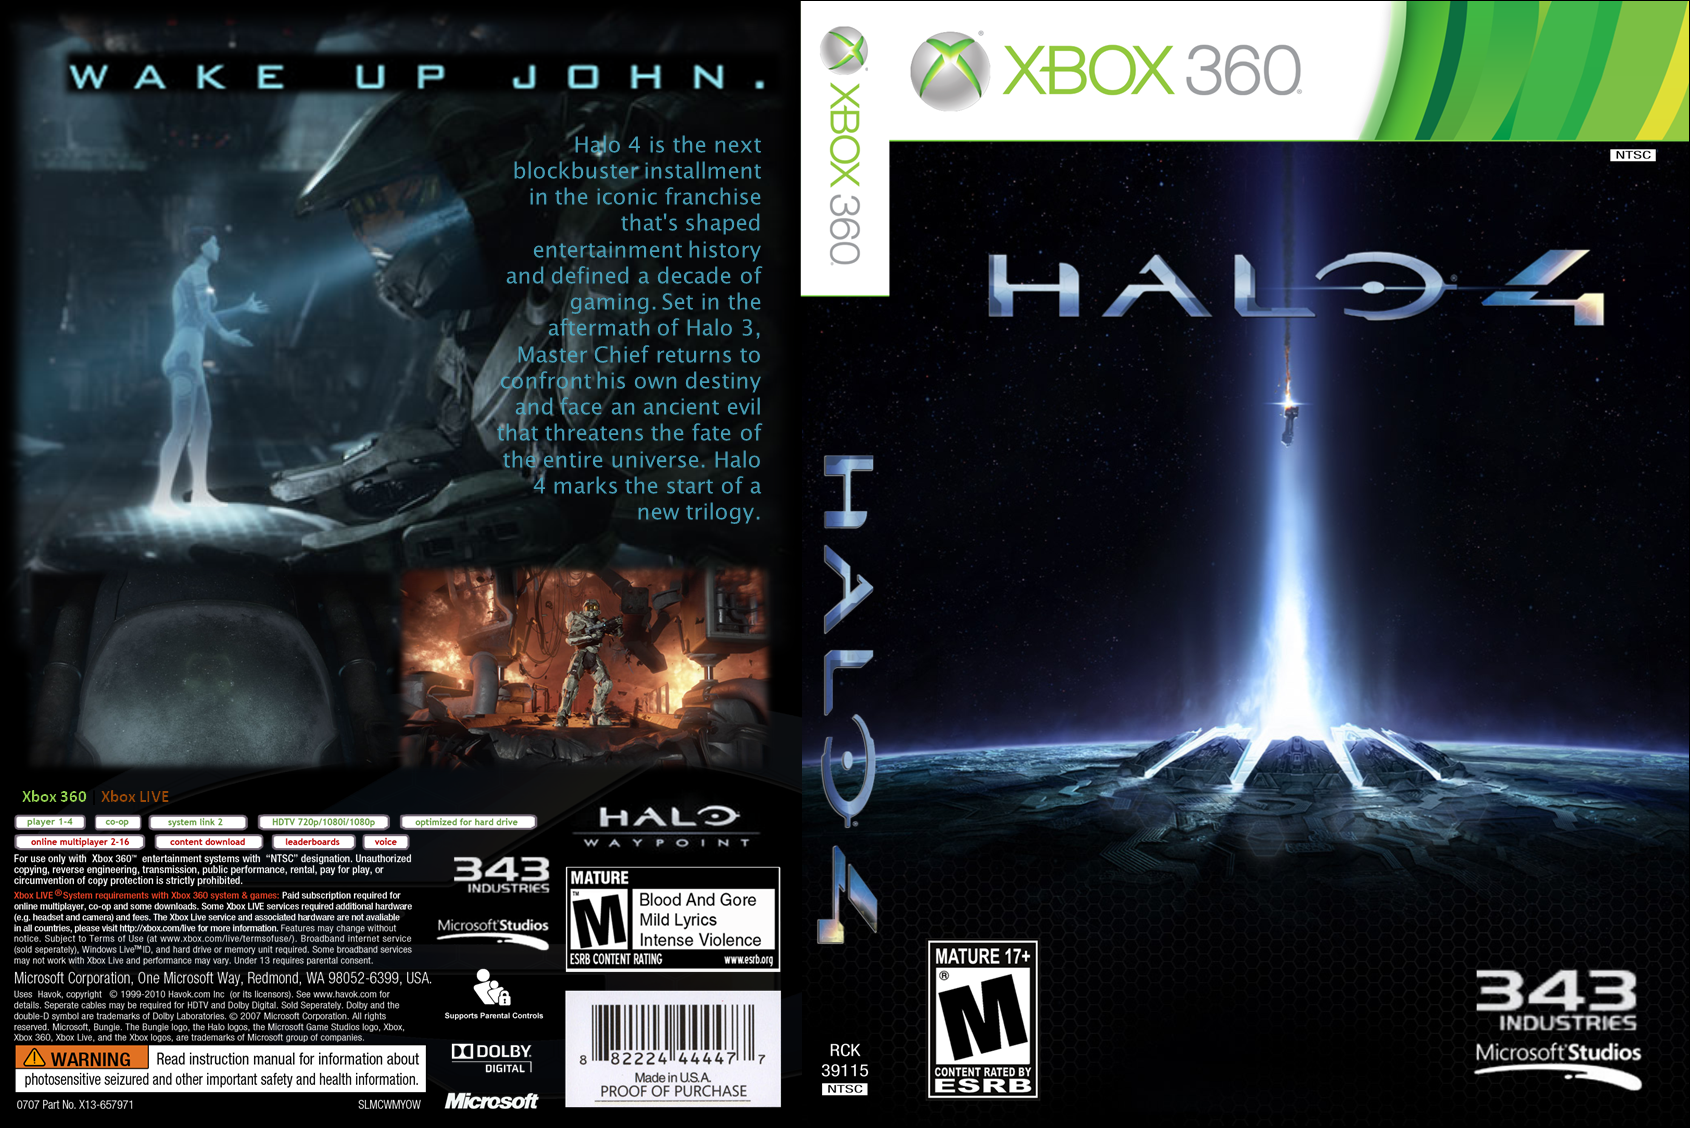 halo 4 xbox 360 box art cover by ironwill8 rh vgboxart com Halo Cover Halo Drawings